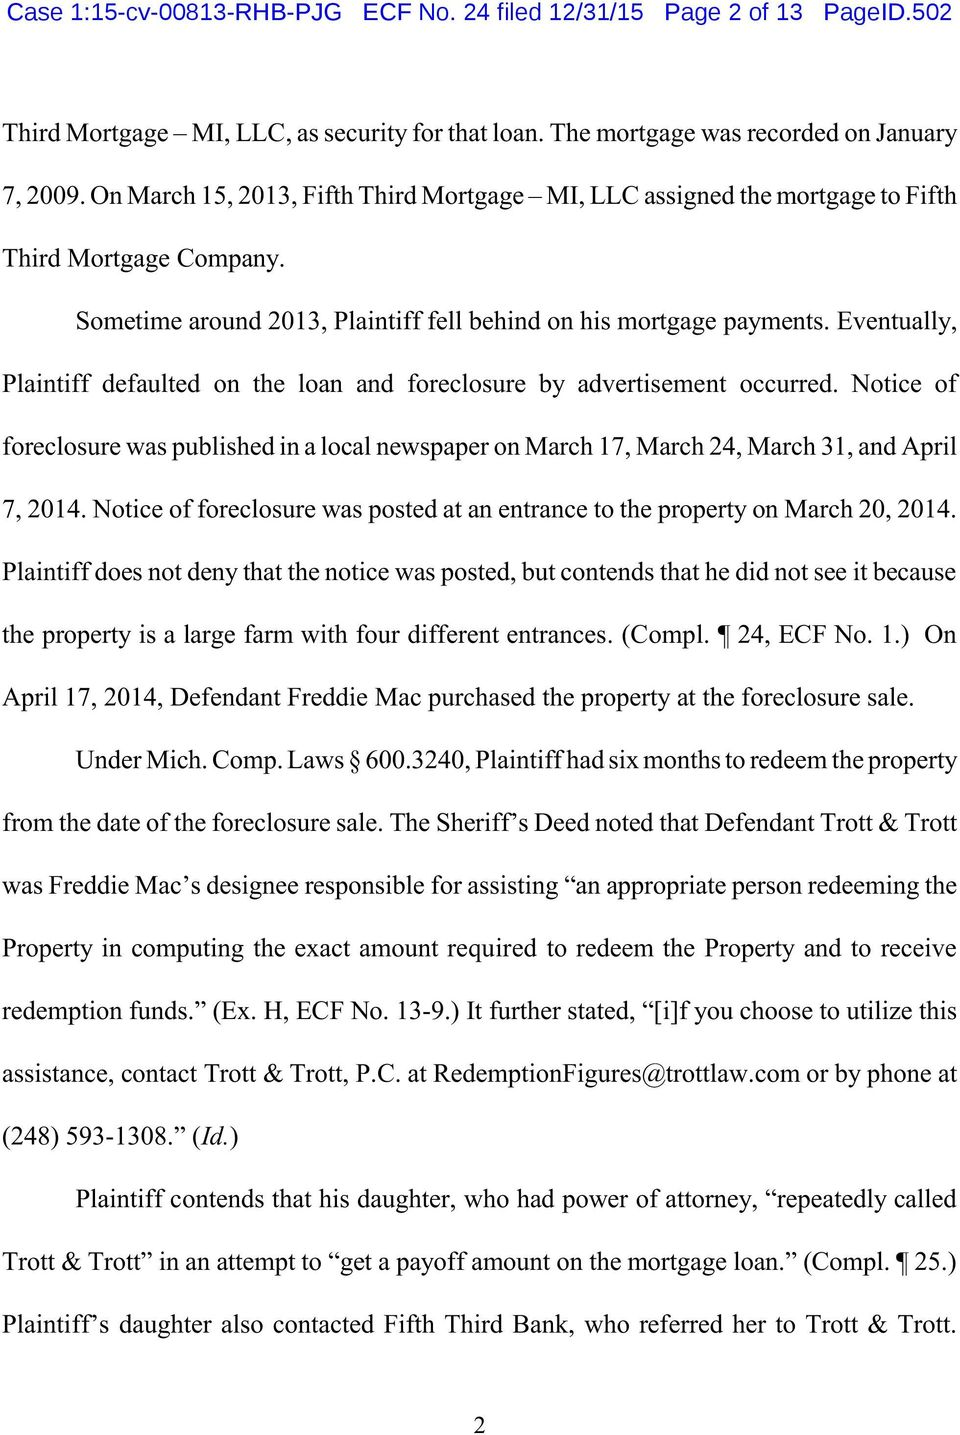 Eventually, Plaintiff defaulted on the loan and foreclosure by advertisement occurred. Notice of foreclosure was published in a local newspaper on March 17, March 24, March 31, and April 7, 2014.